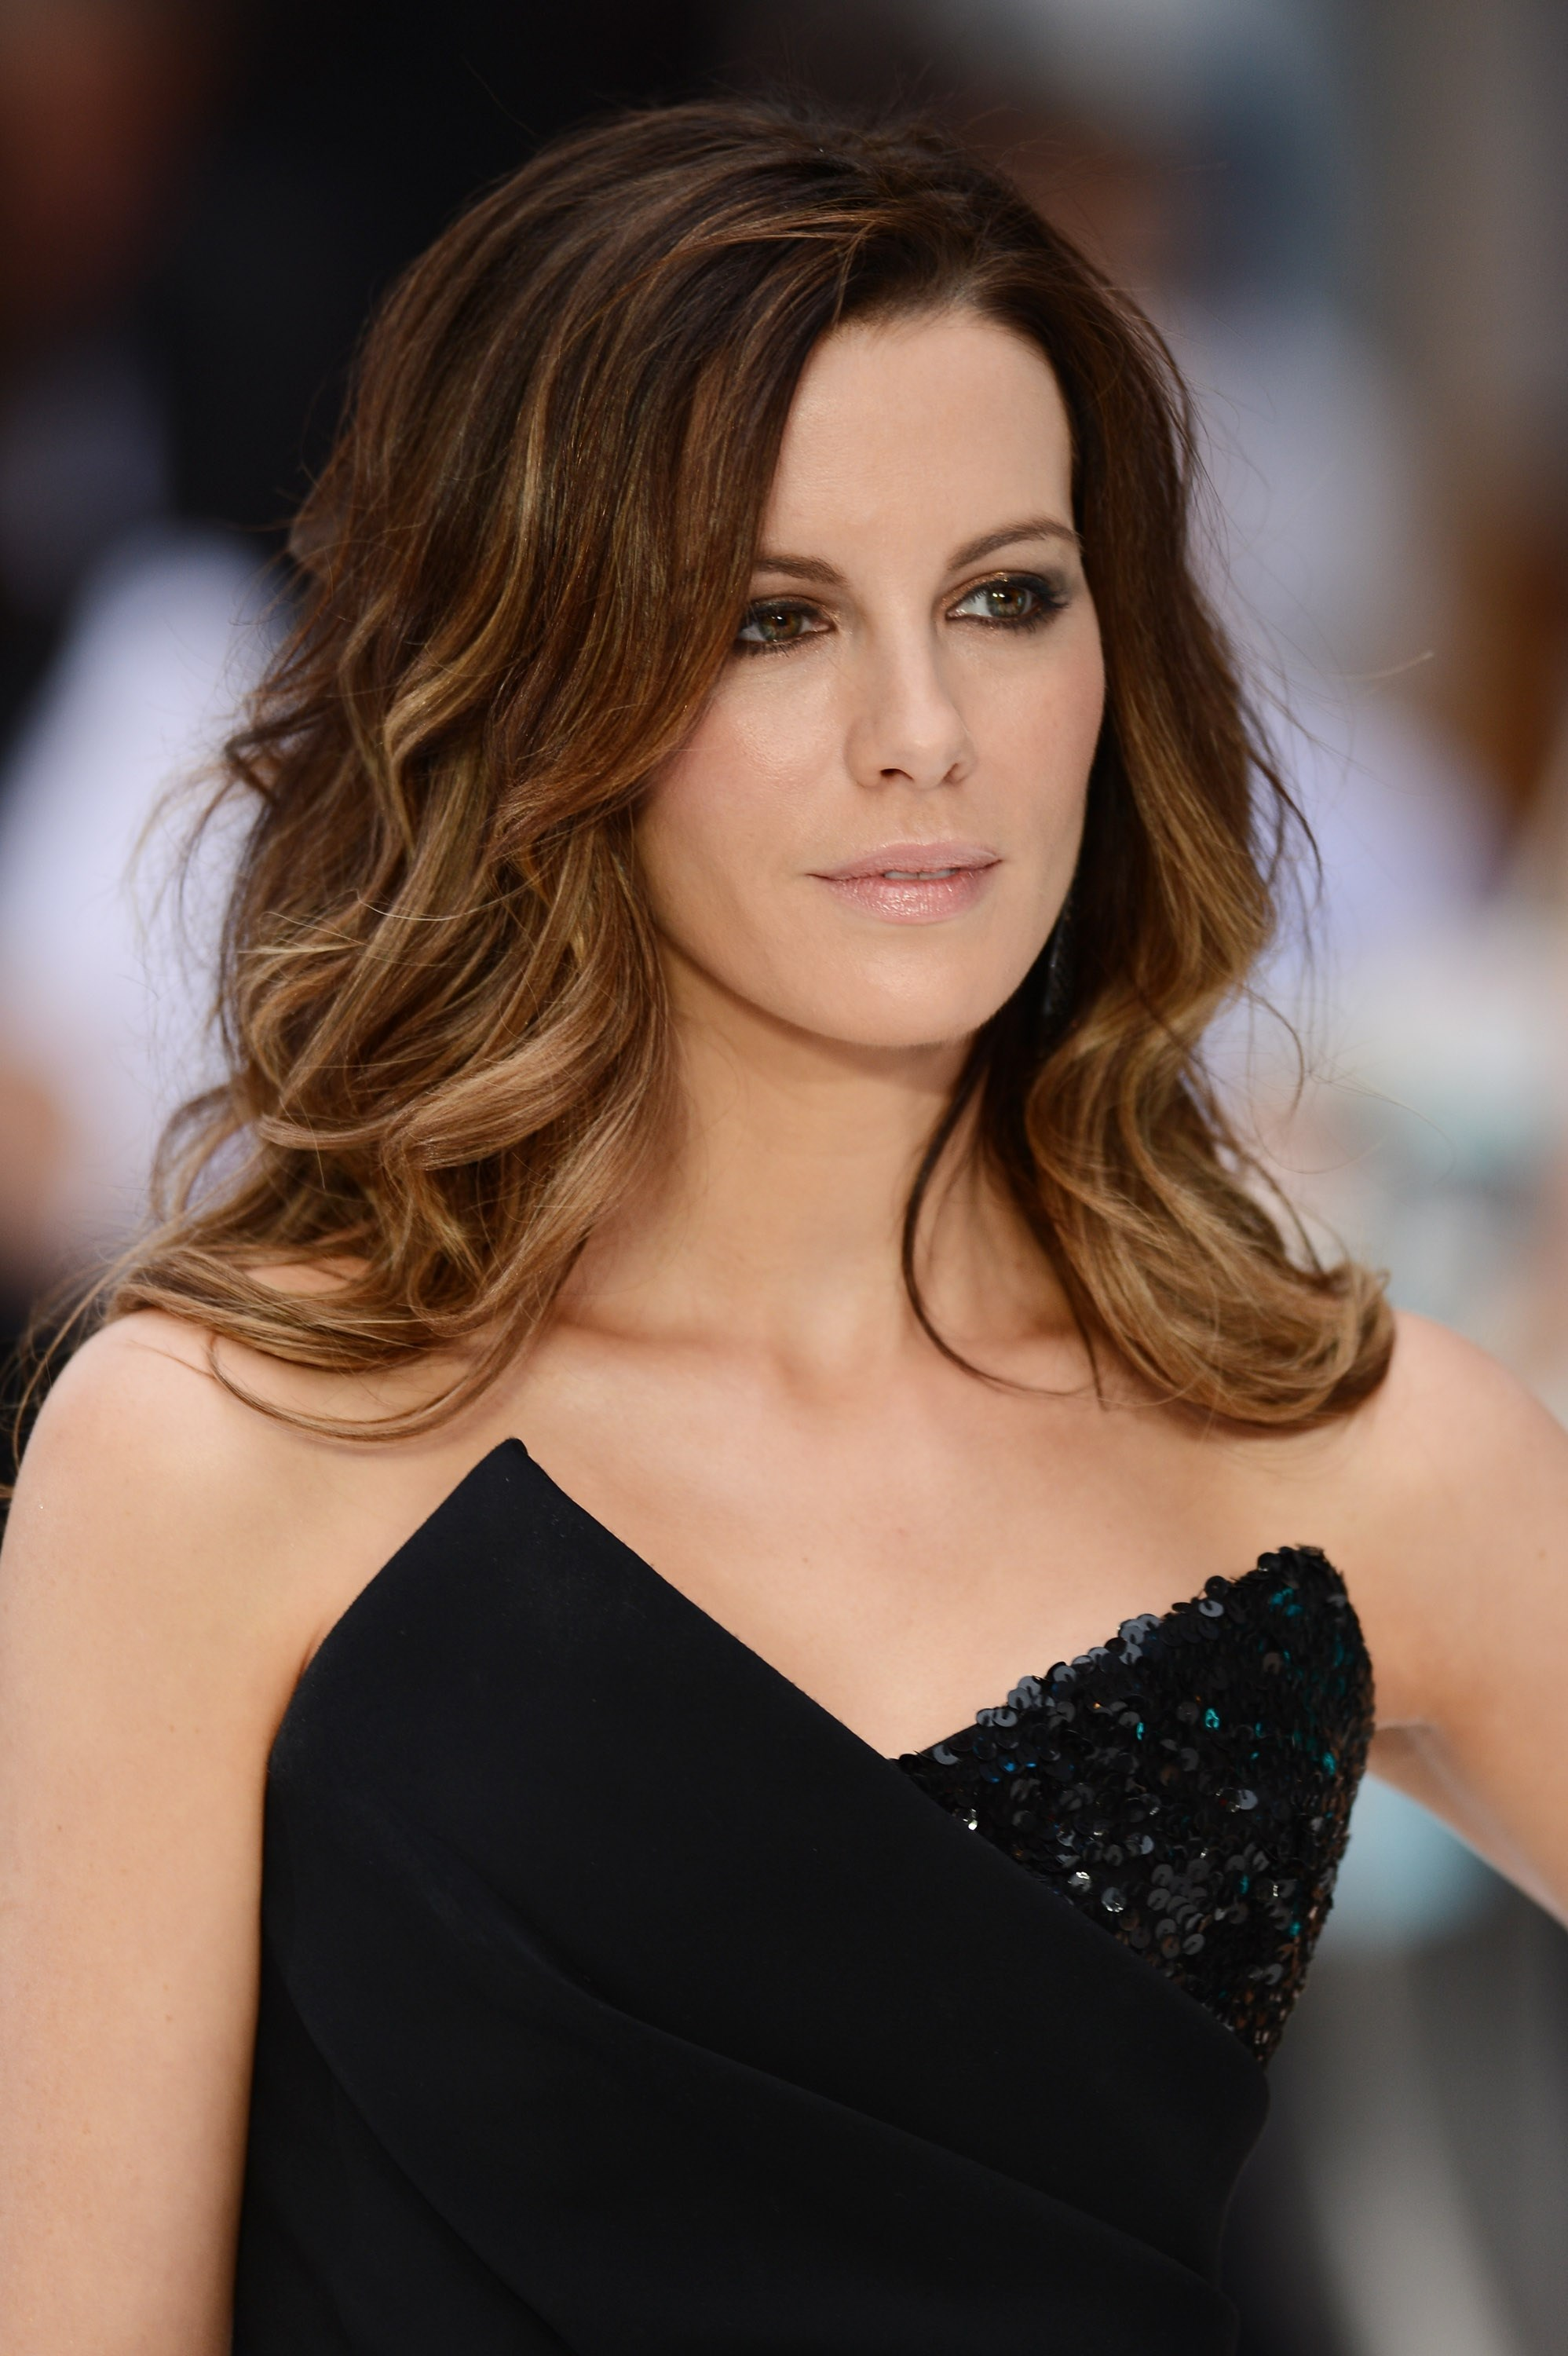 Kate Beckinsale | Known people - famous people news and ... Kate Beckinsale